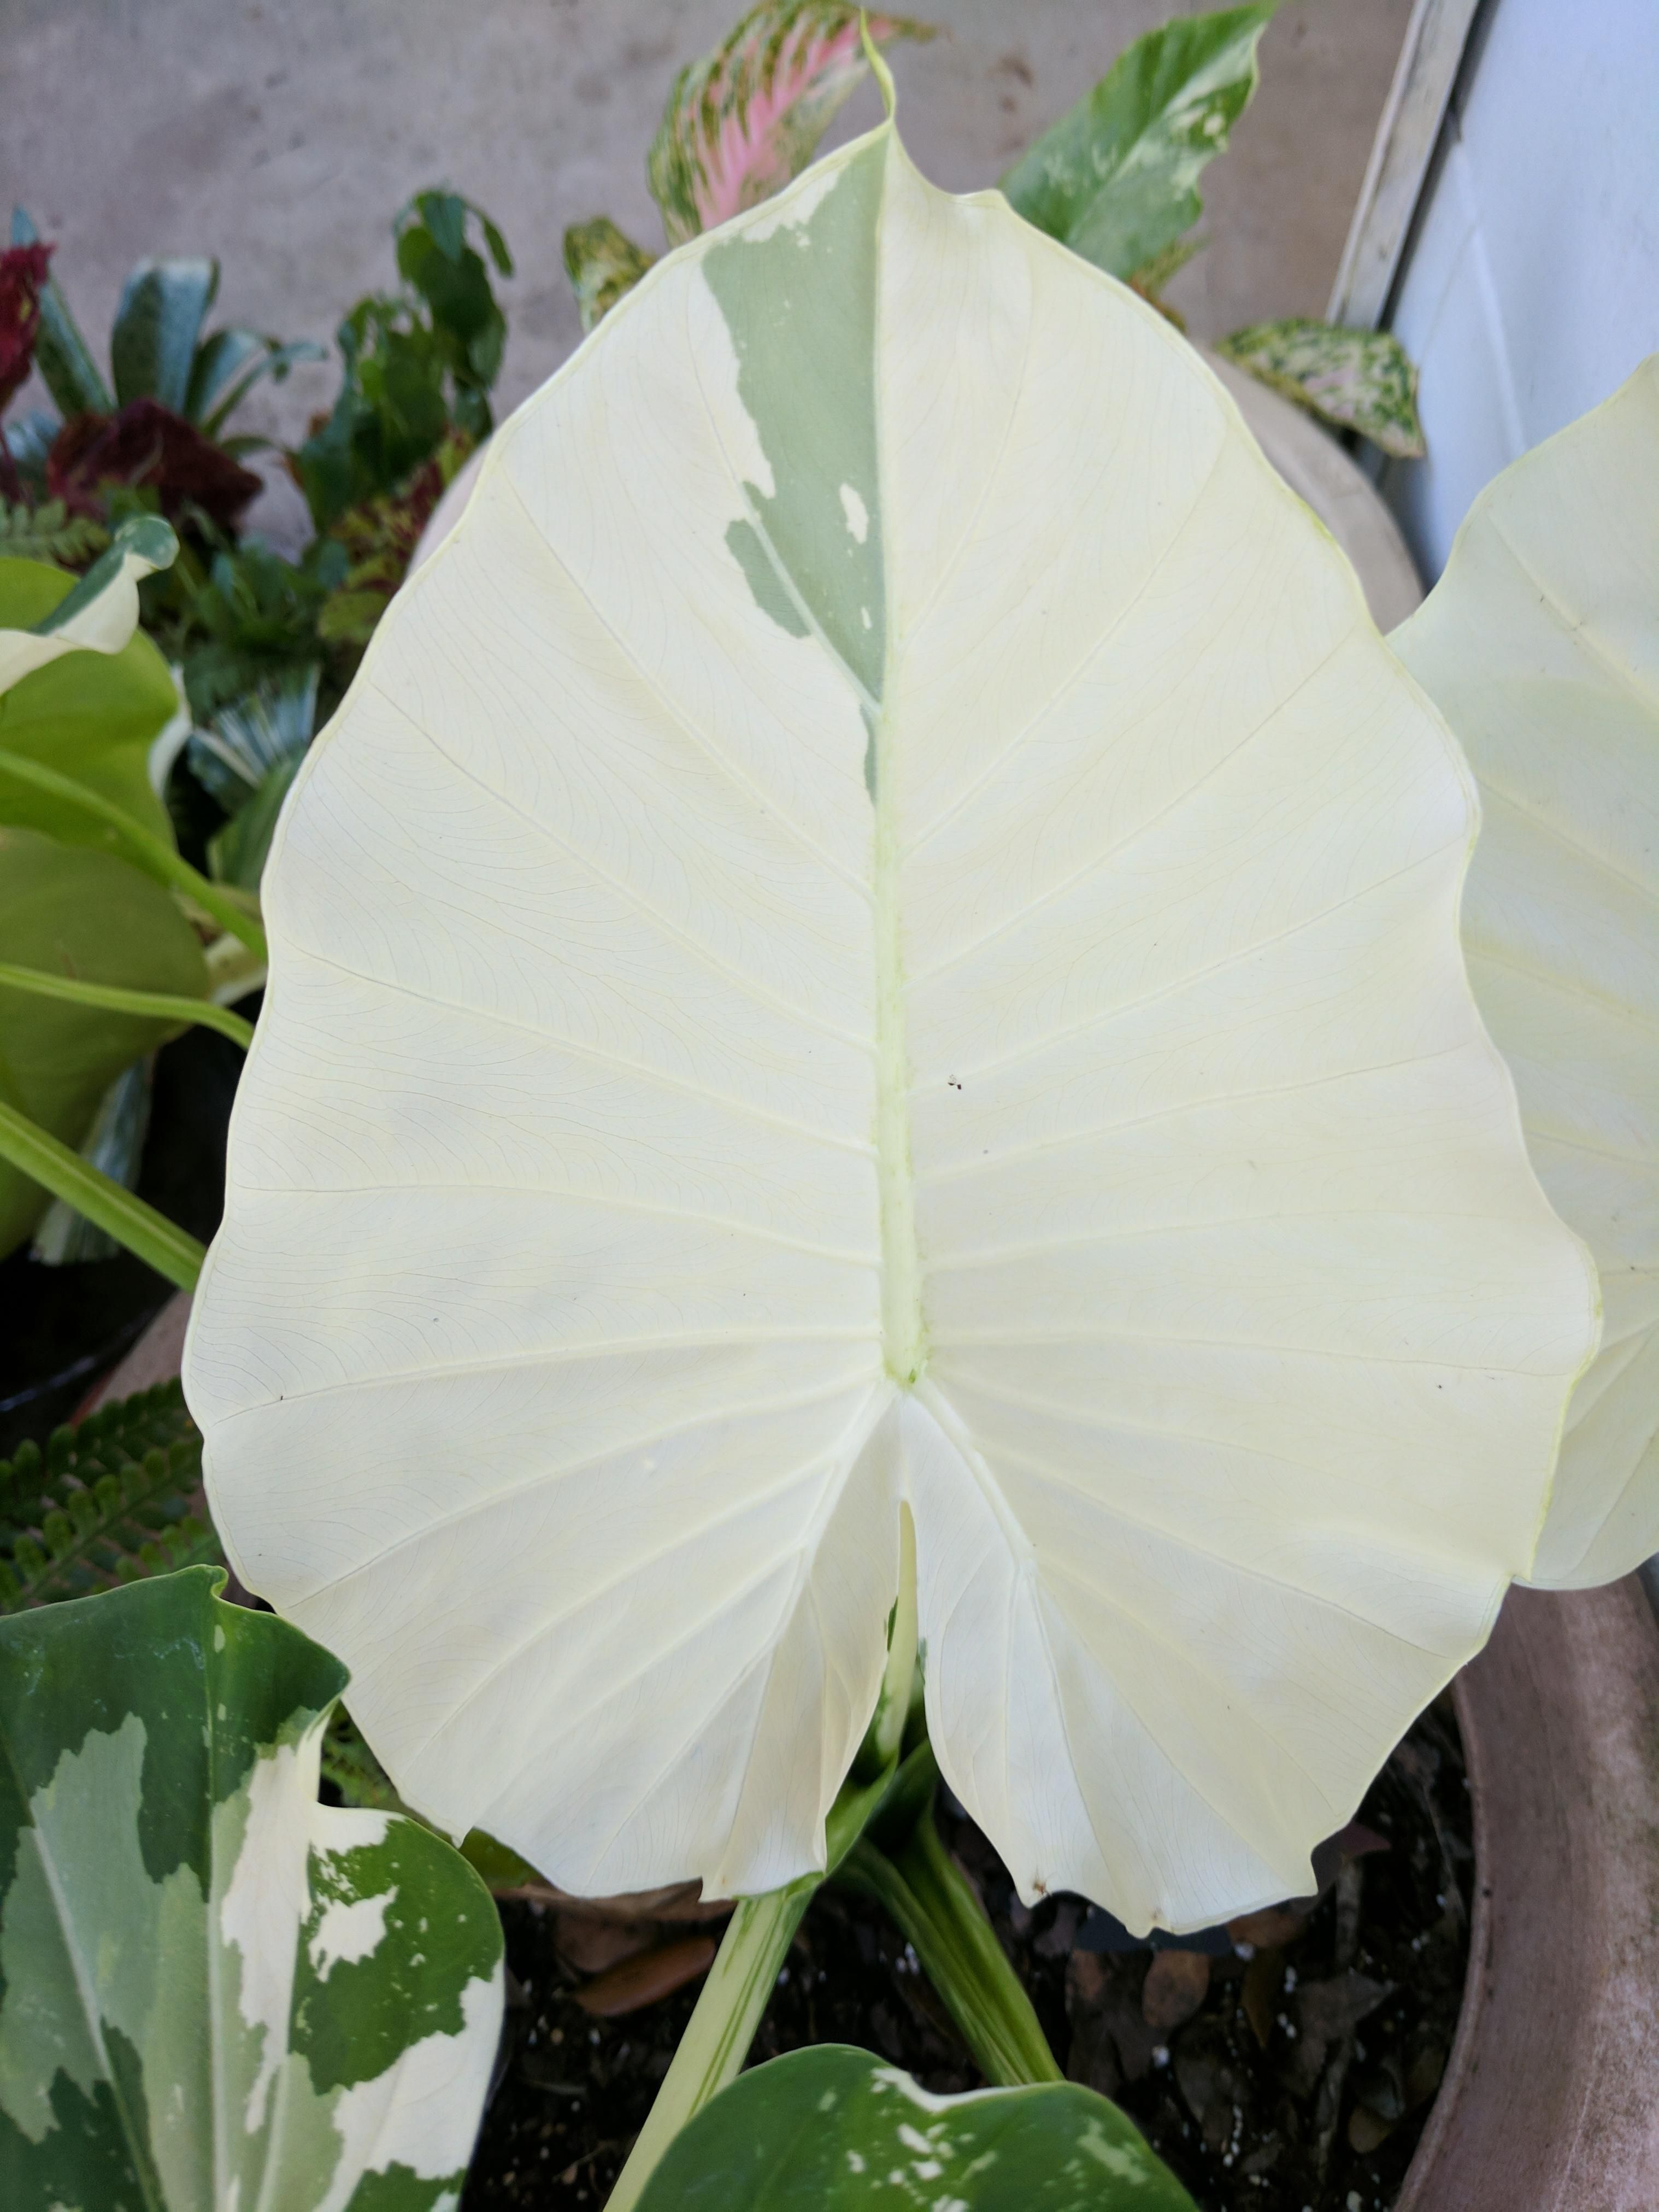 Close Up Of The Almost All White Elephant Ear Leaf Alocasia Gardening Garden Diy Home Flowers Roses Nature Landscaping Horticulture